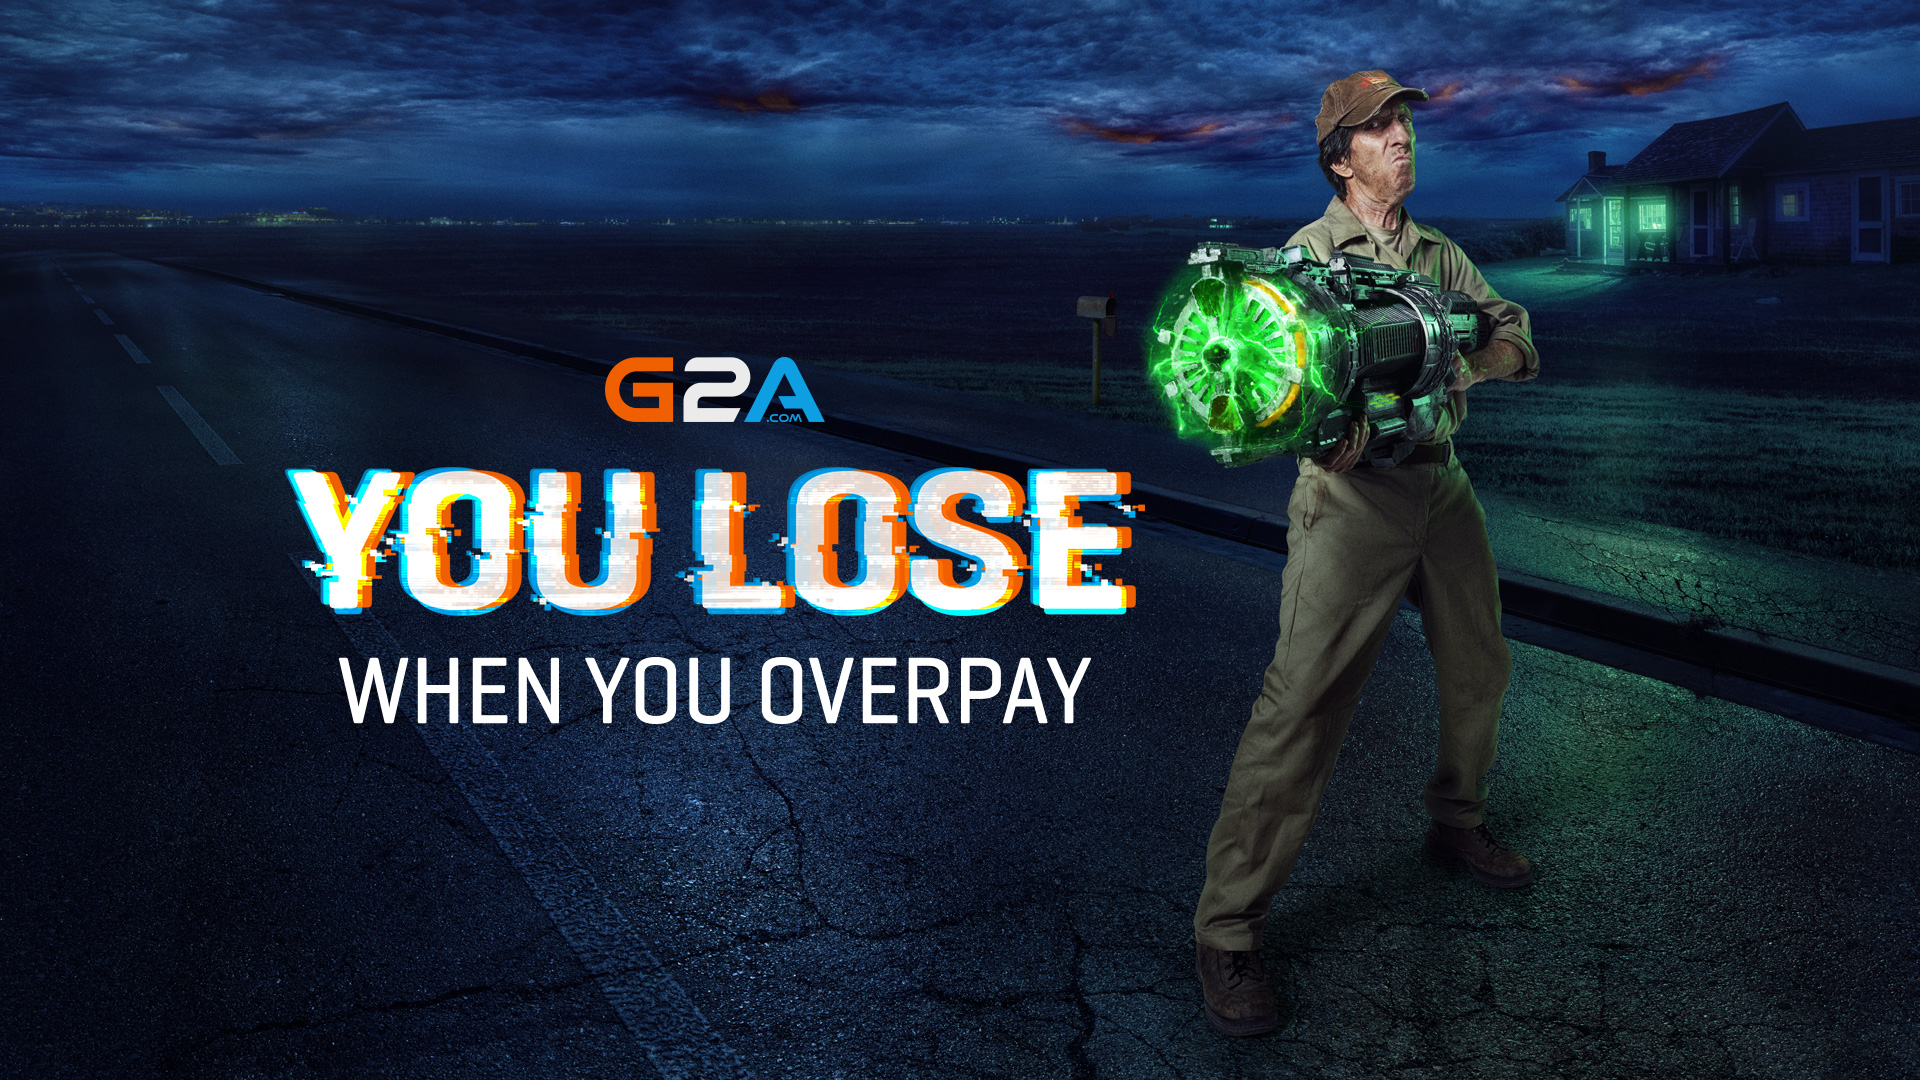 You lose when you overpay  – G2A.COM launches a new marketing campaign in Europe